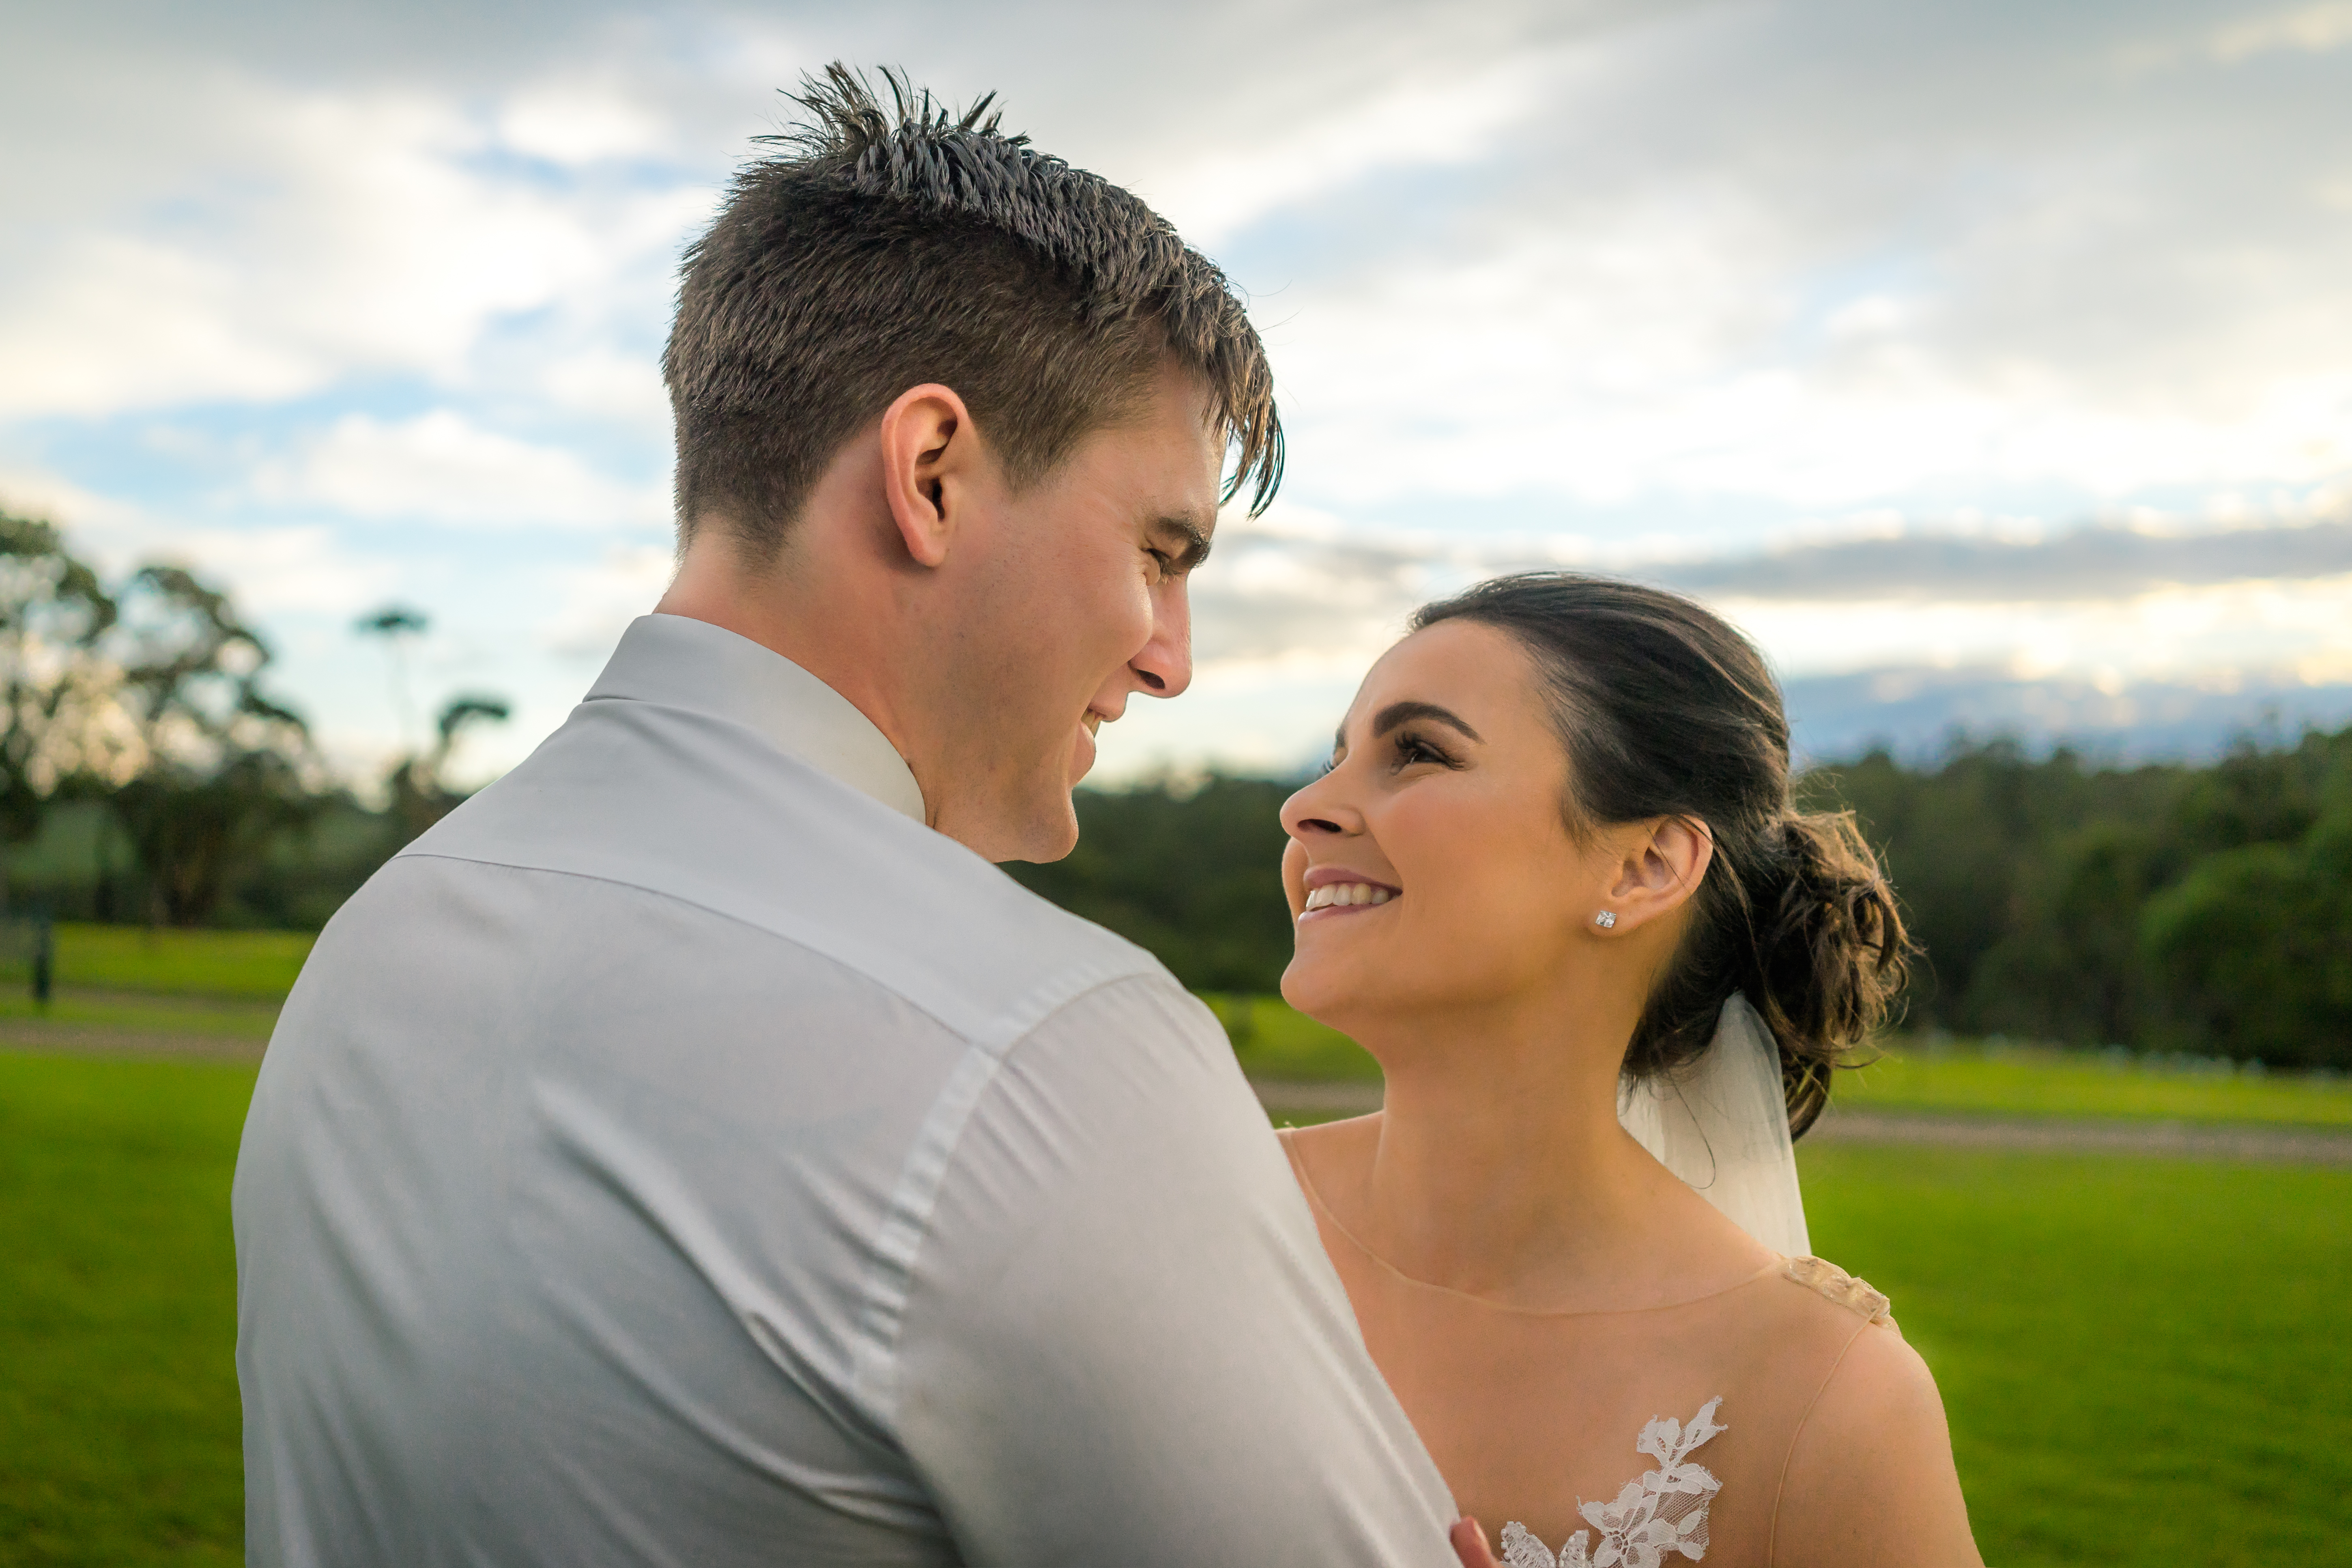 this happy groom look at her beautiful bride at their wedding day captured by photographer